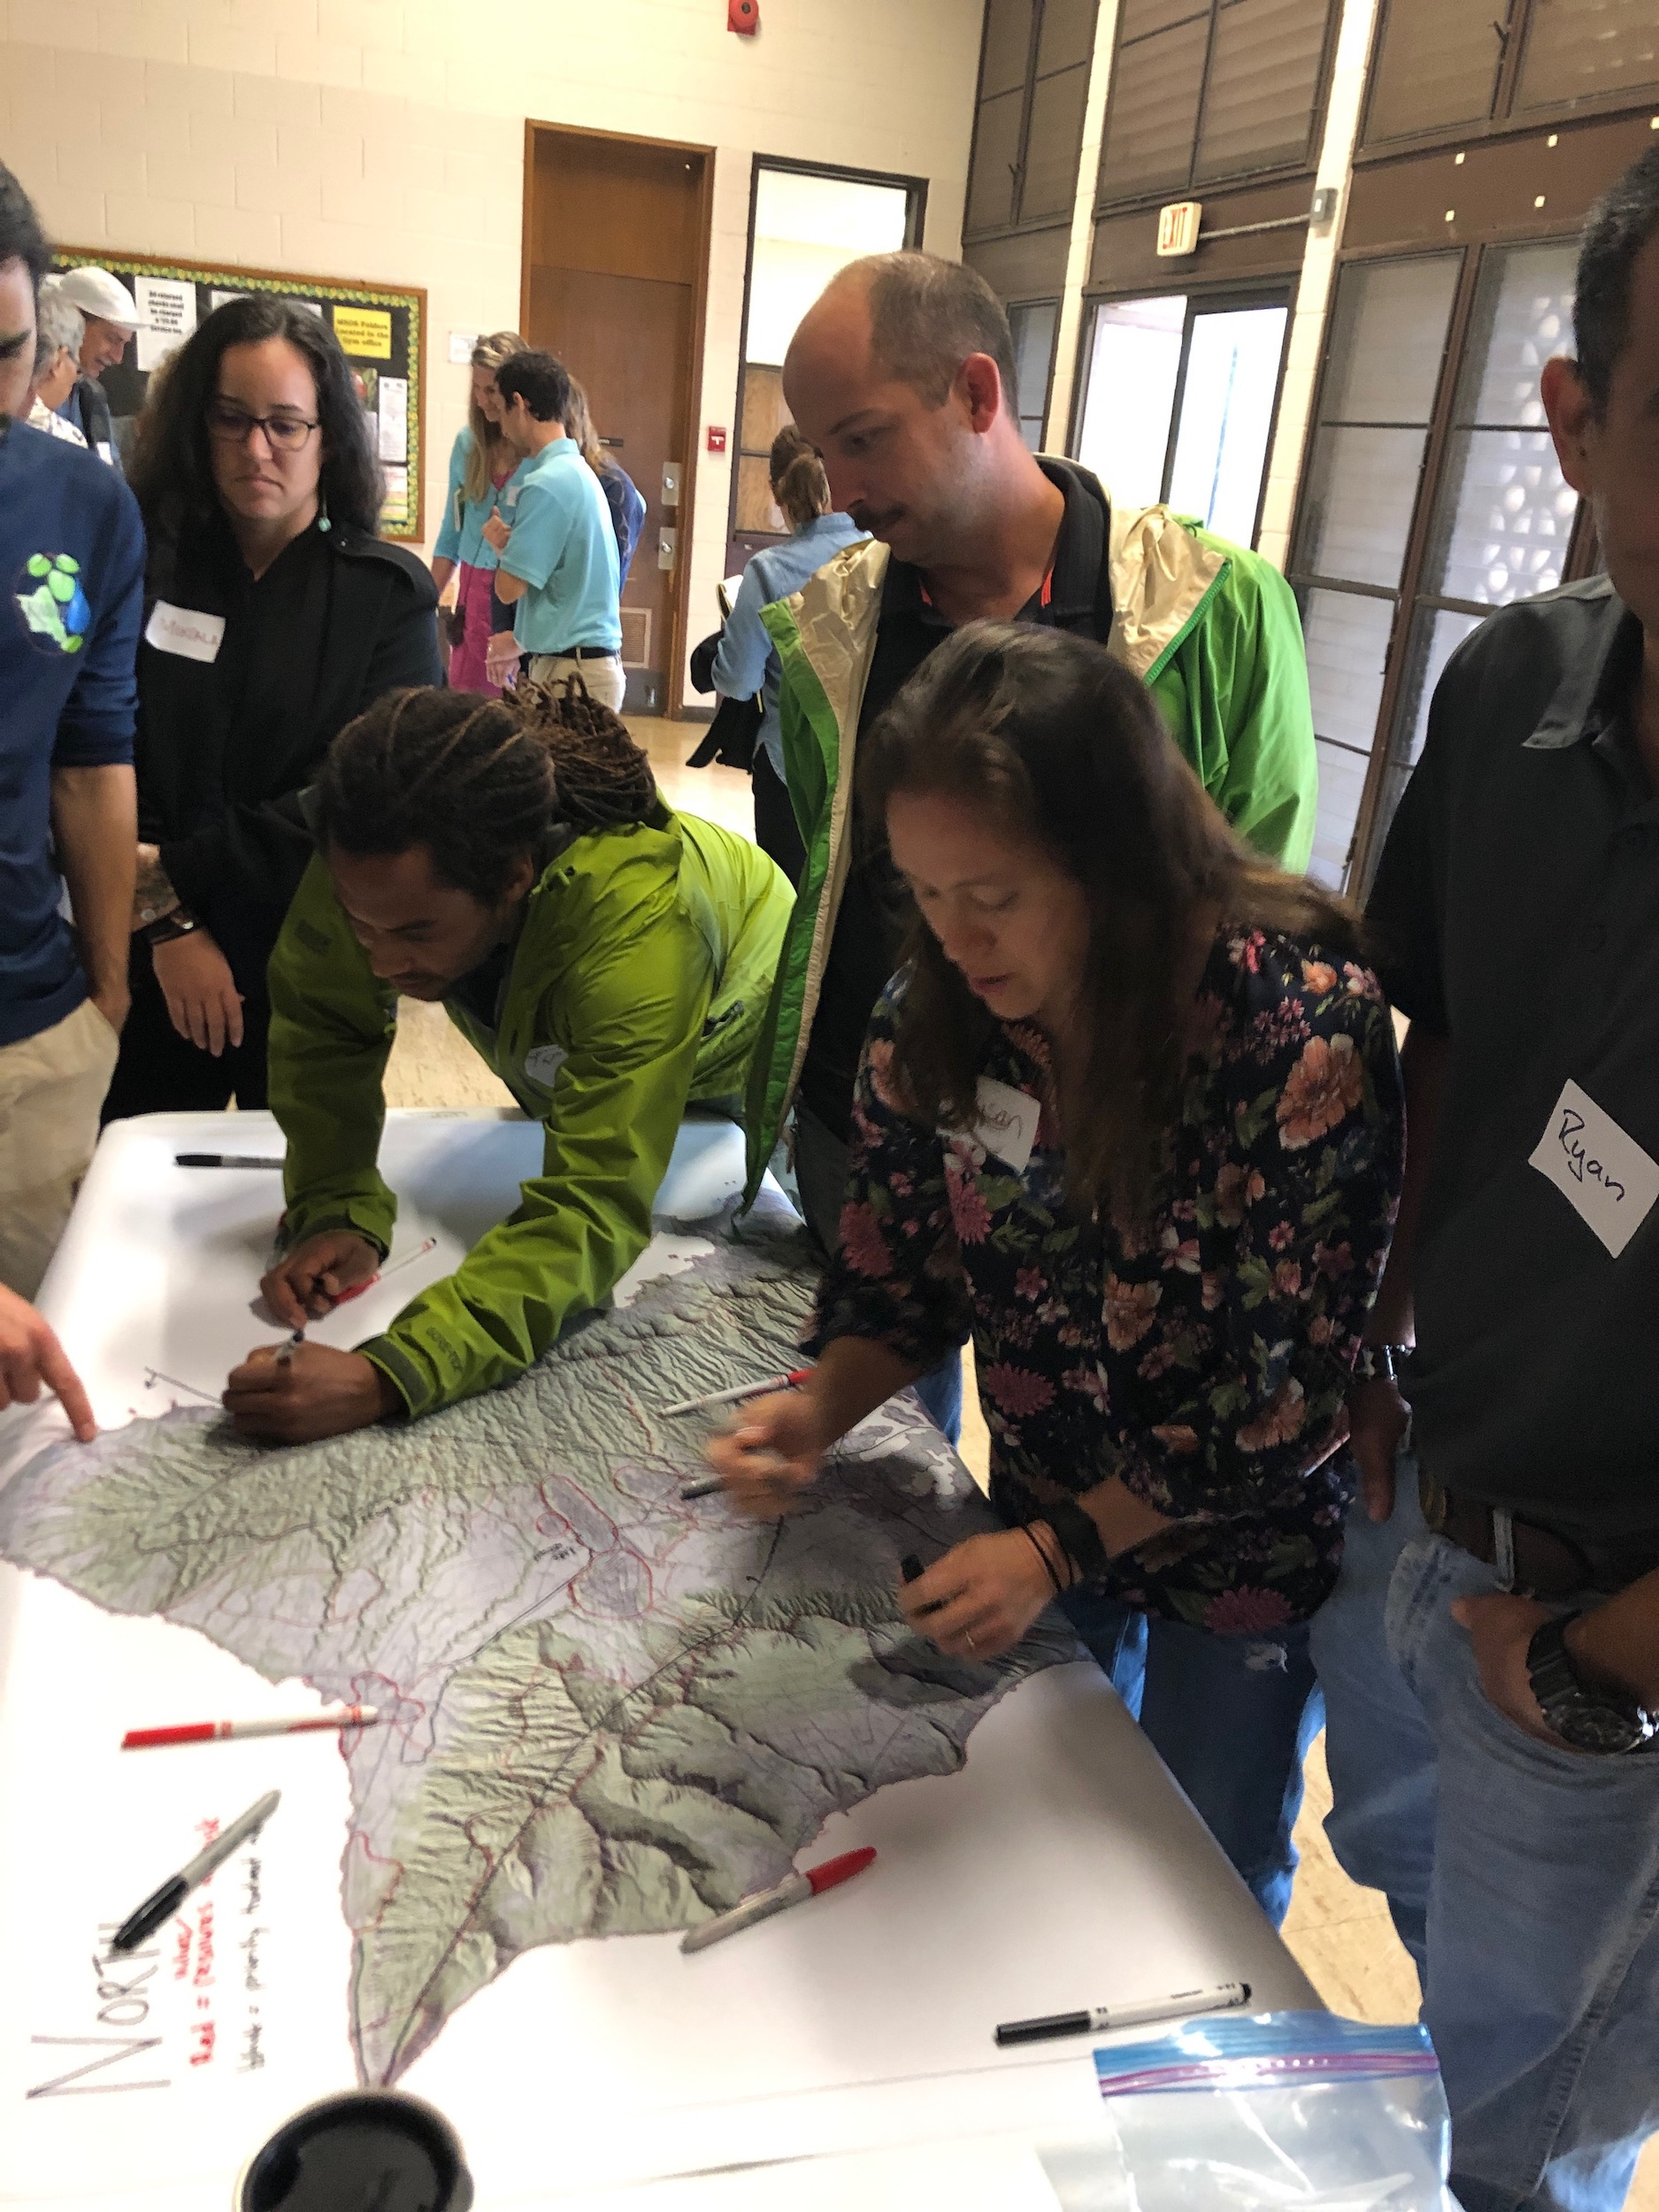 Oahu Vegetative Fuels Management Collaborative Action Planning Workshop_2_19_2019_17.jpg